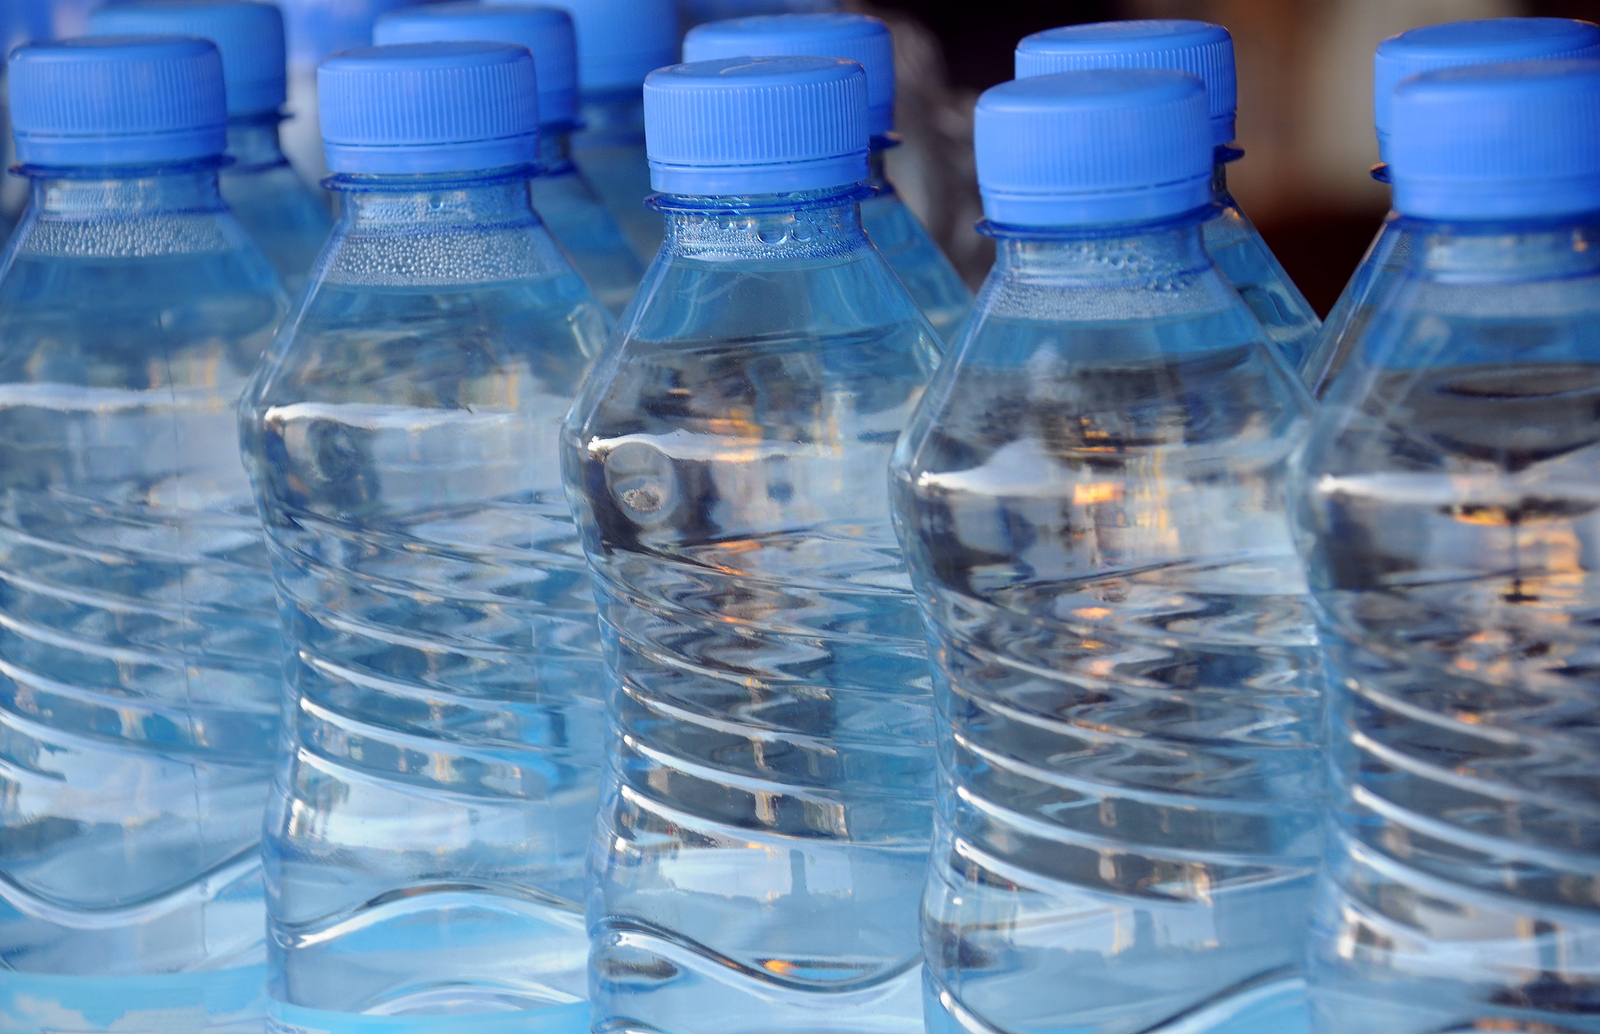 bigstock-Closeup-Mineral-Water-Bottles-23809022